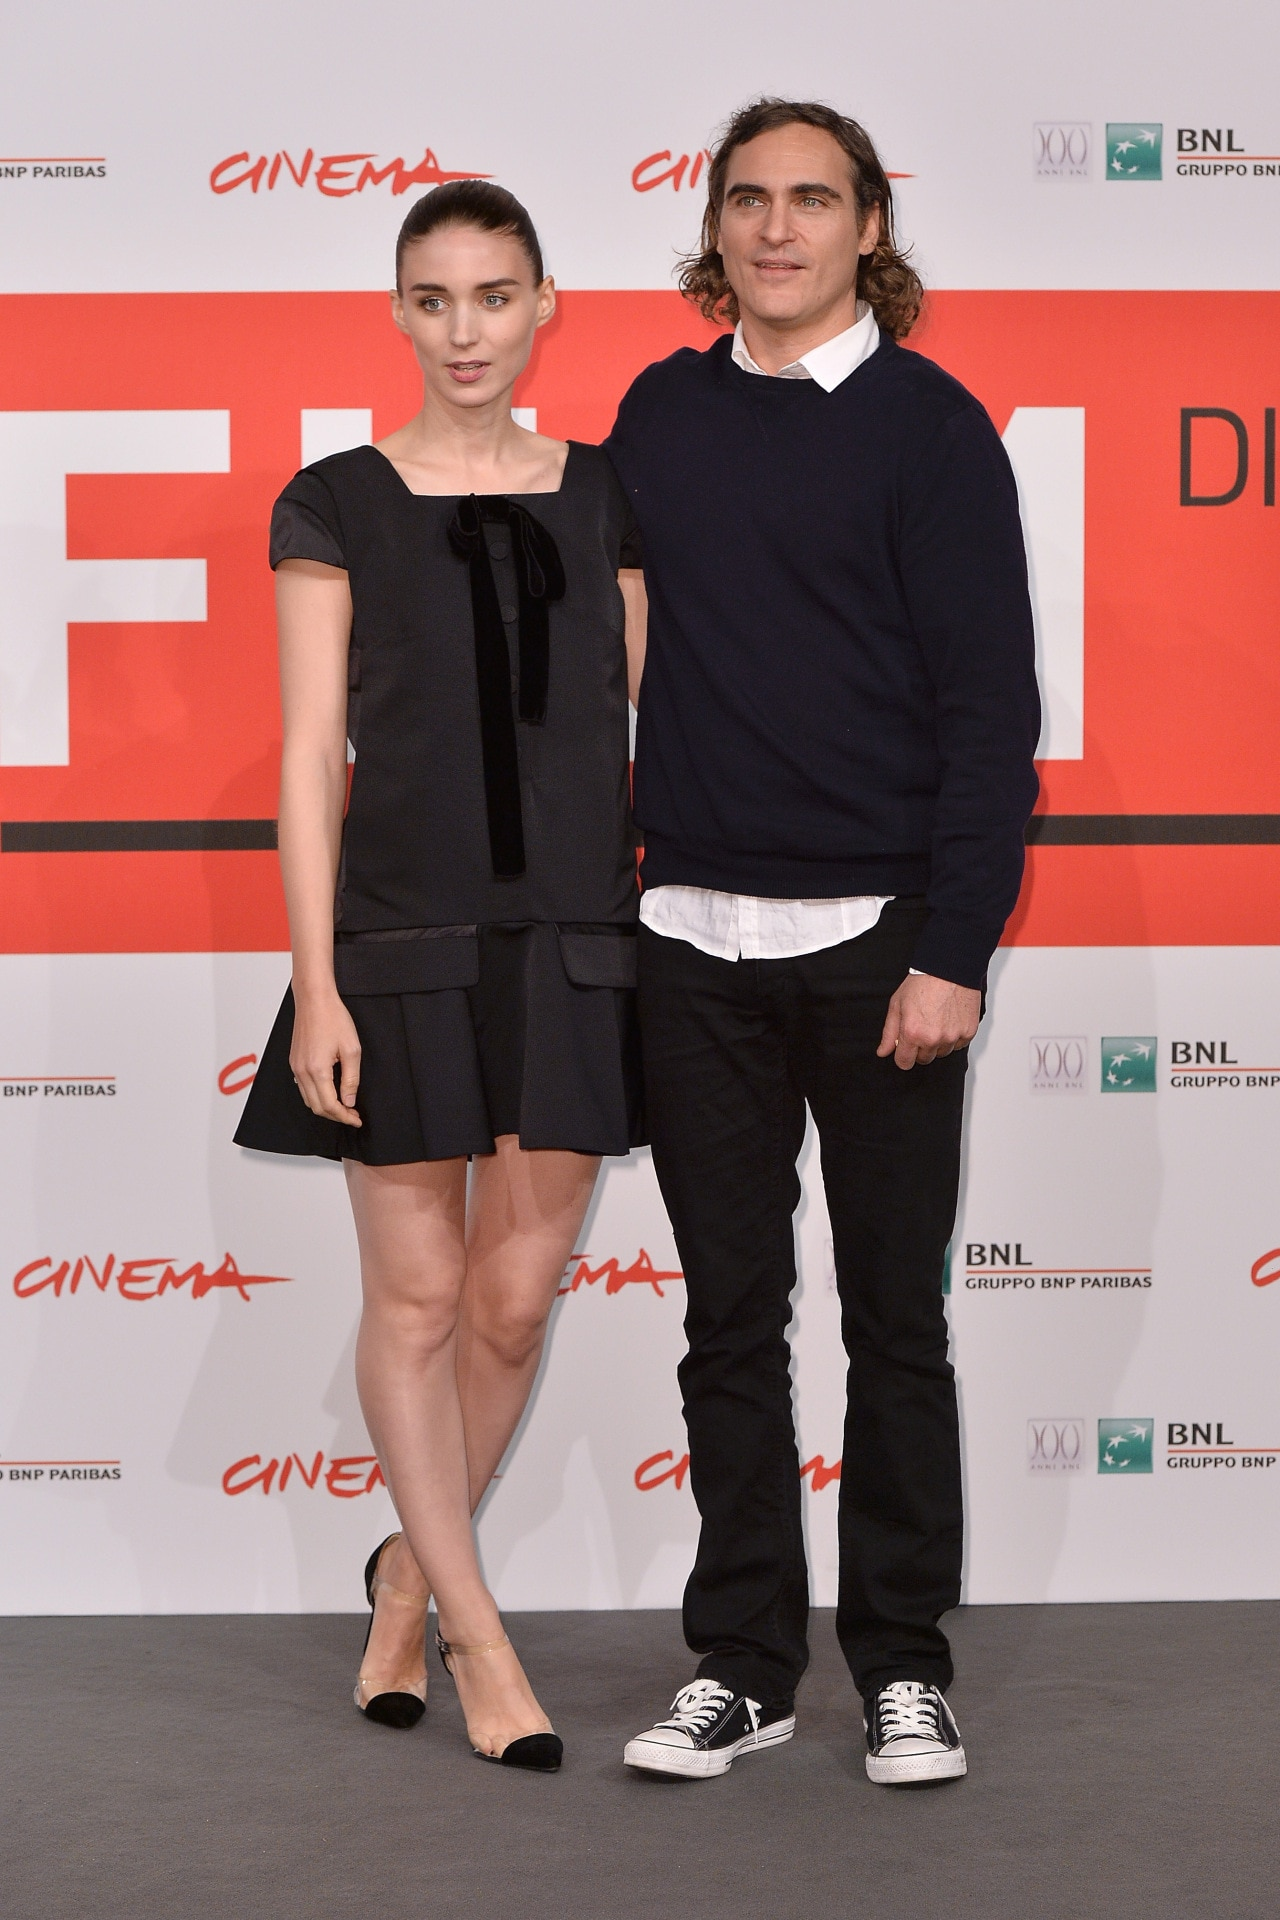 Rooney Mara and Joaquin Phoenix are engaged!